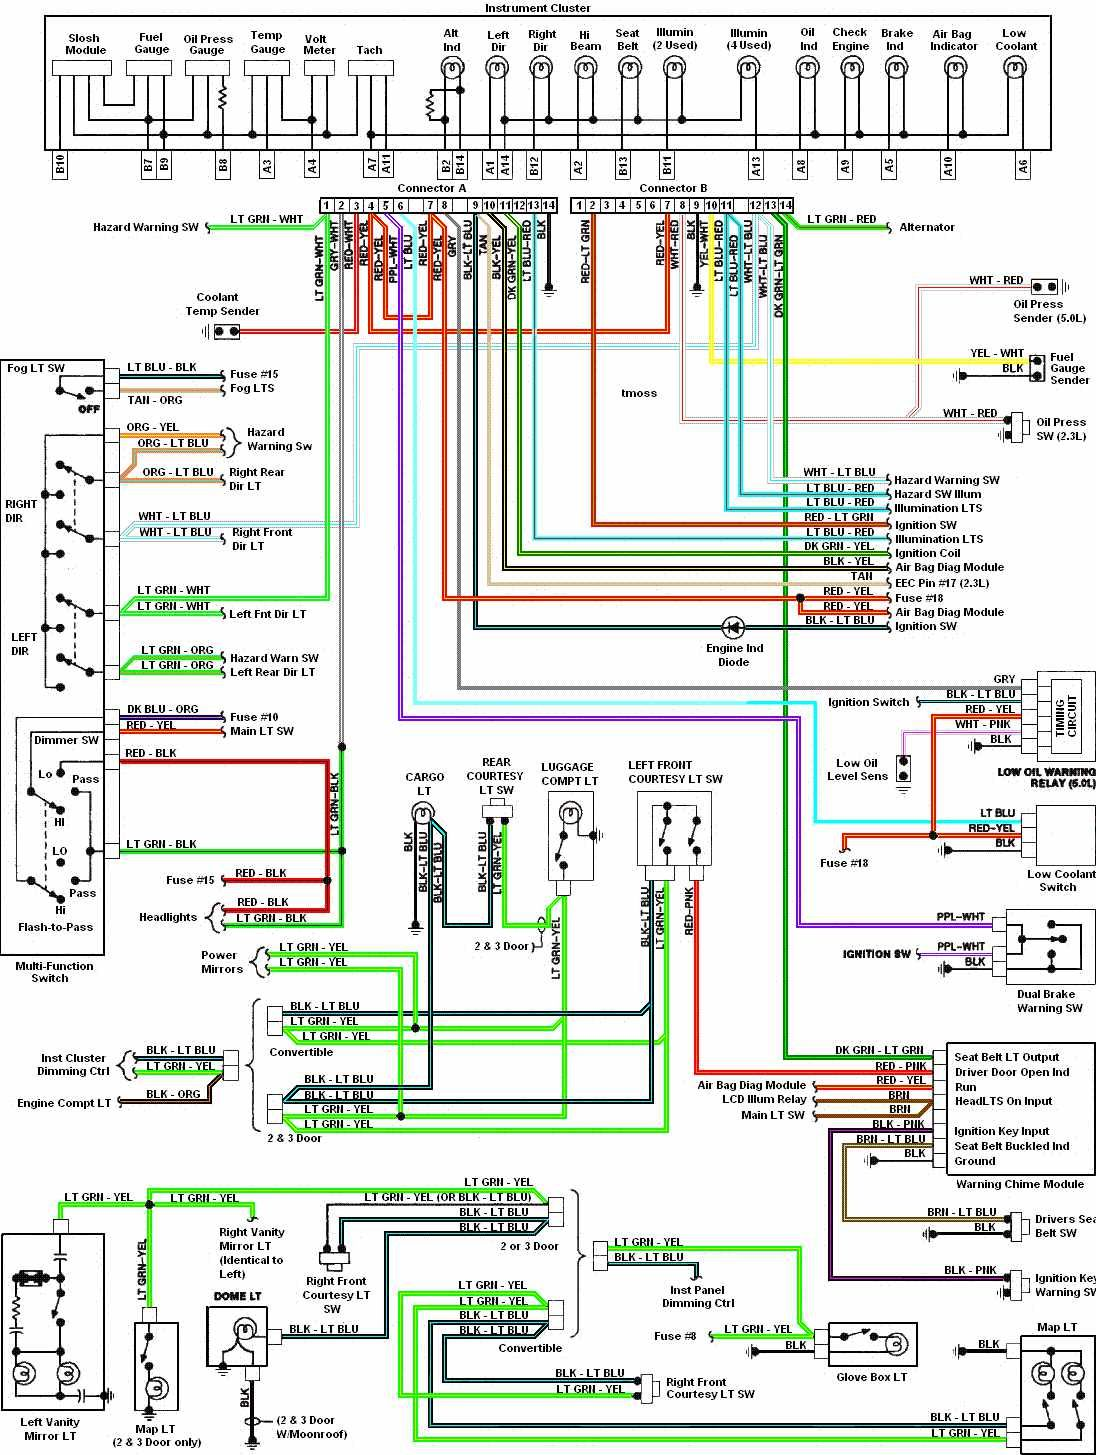 Wiring Diagram For 1993 Mustang Gt